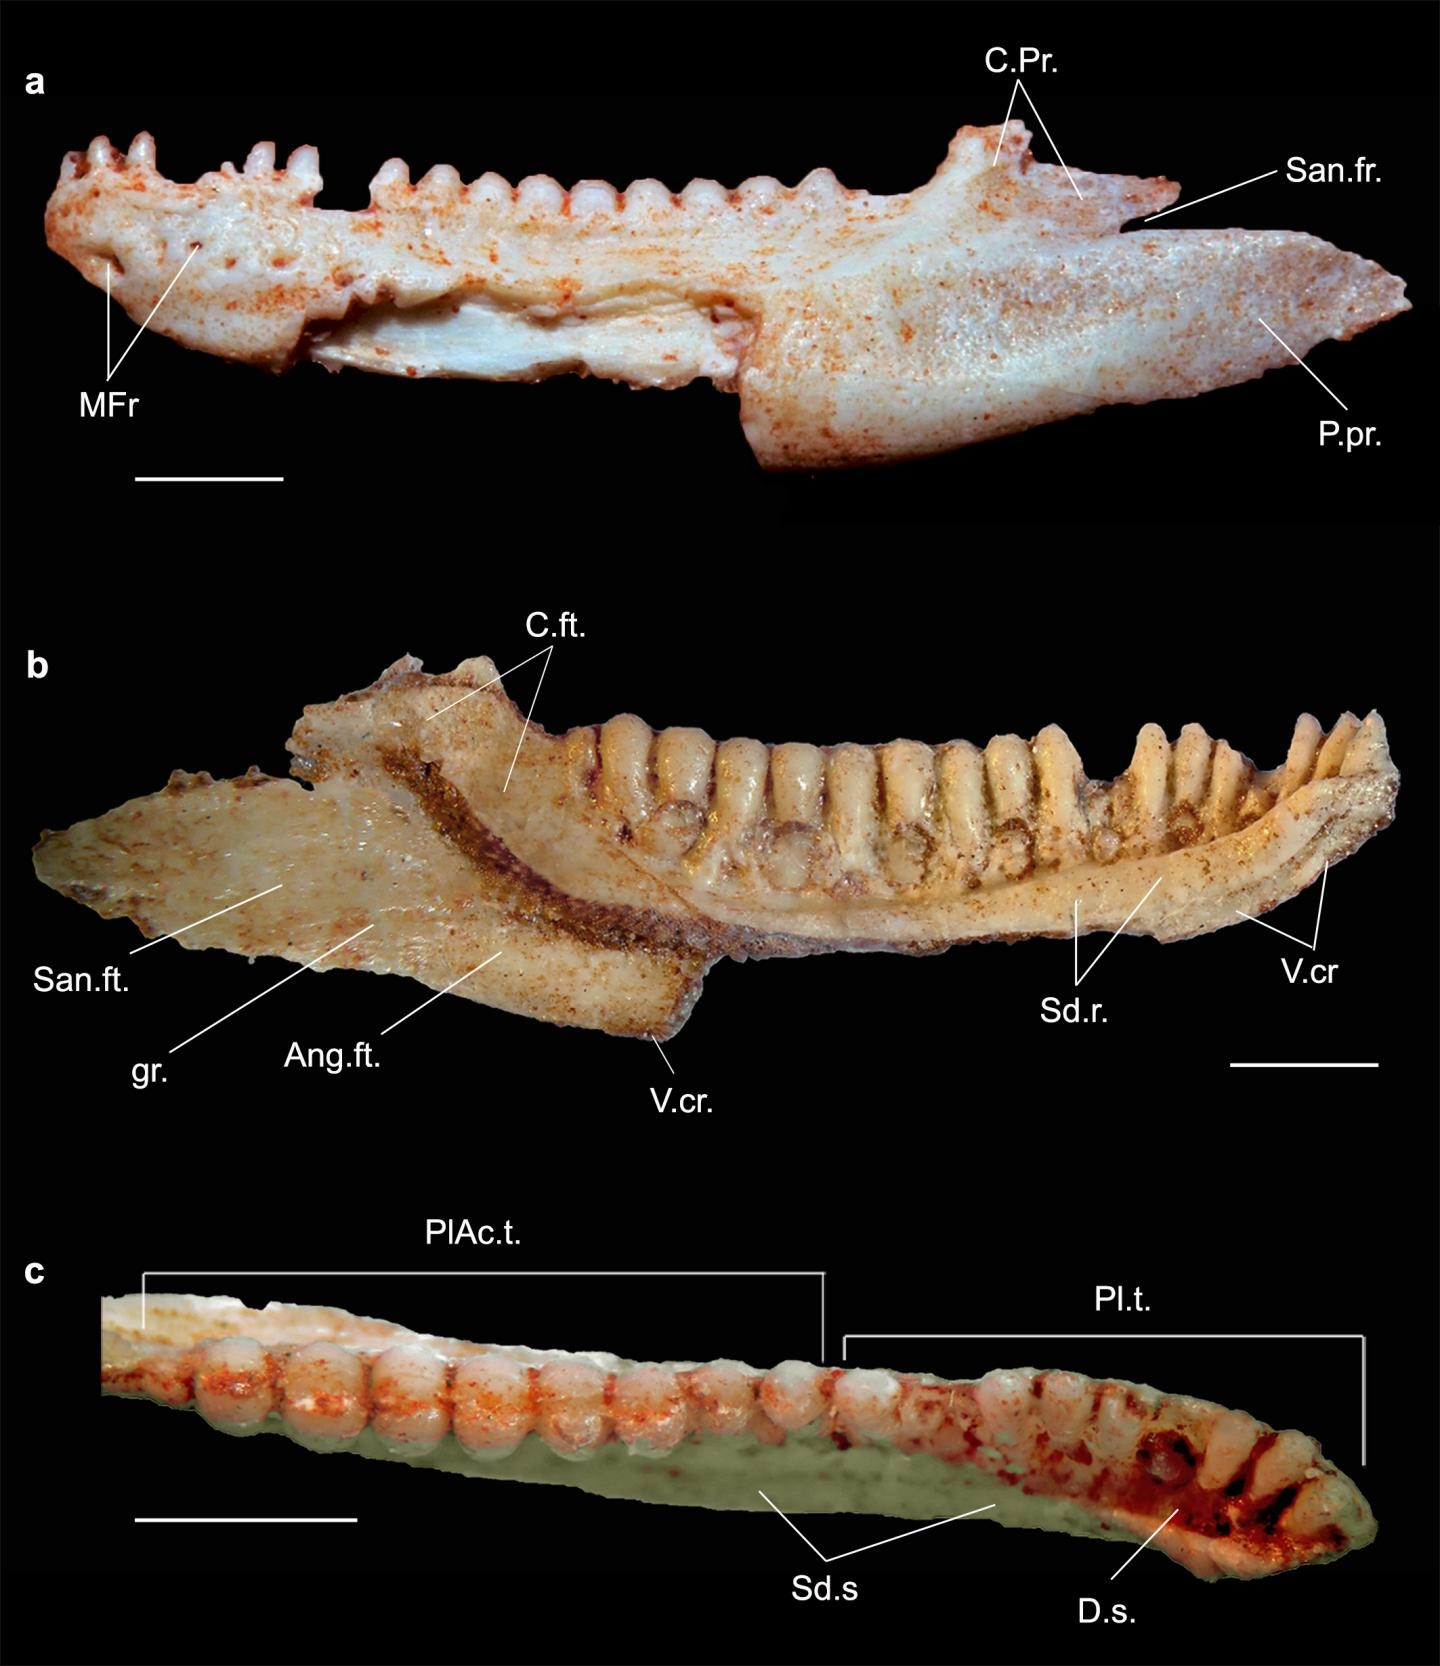 This is a Gueragama holotype by Tiago Simoes and Adriano Kury. Credit : Tiago Simoes and Adriano Kury